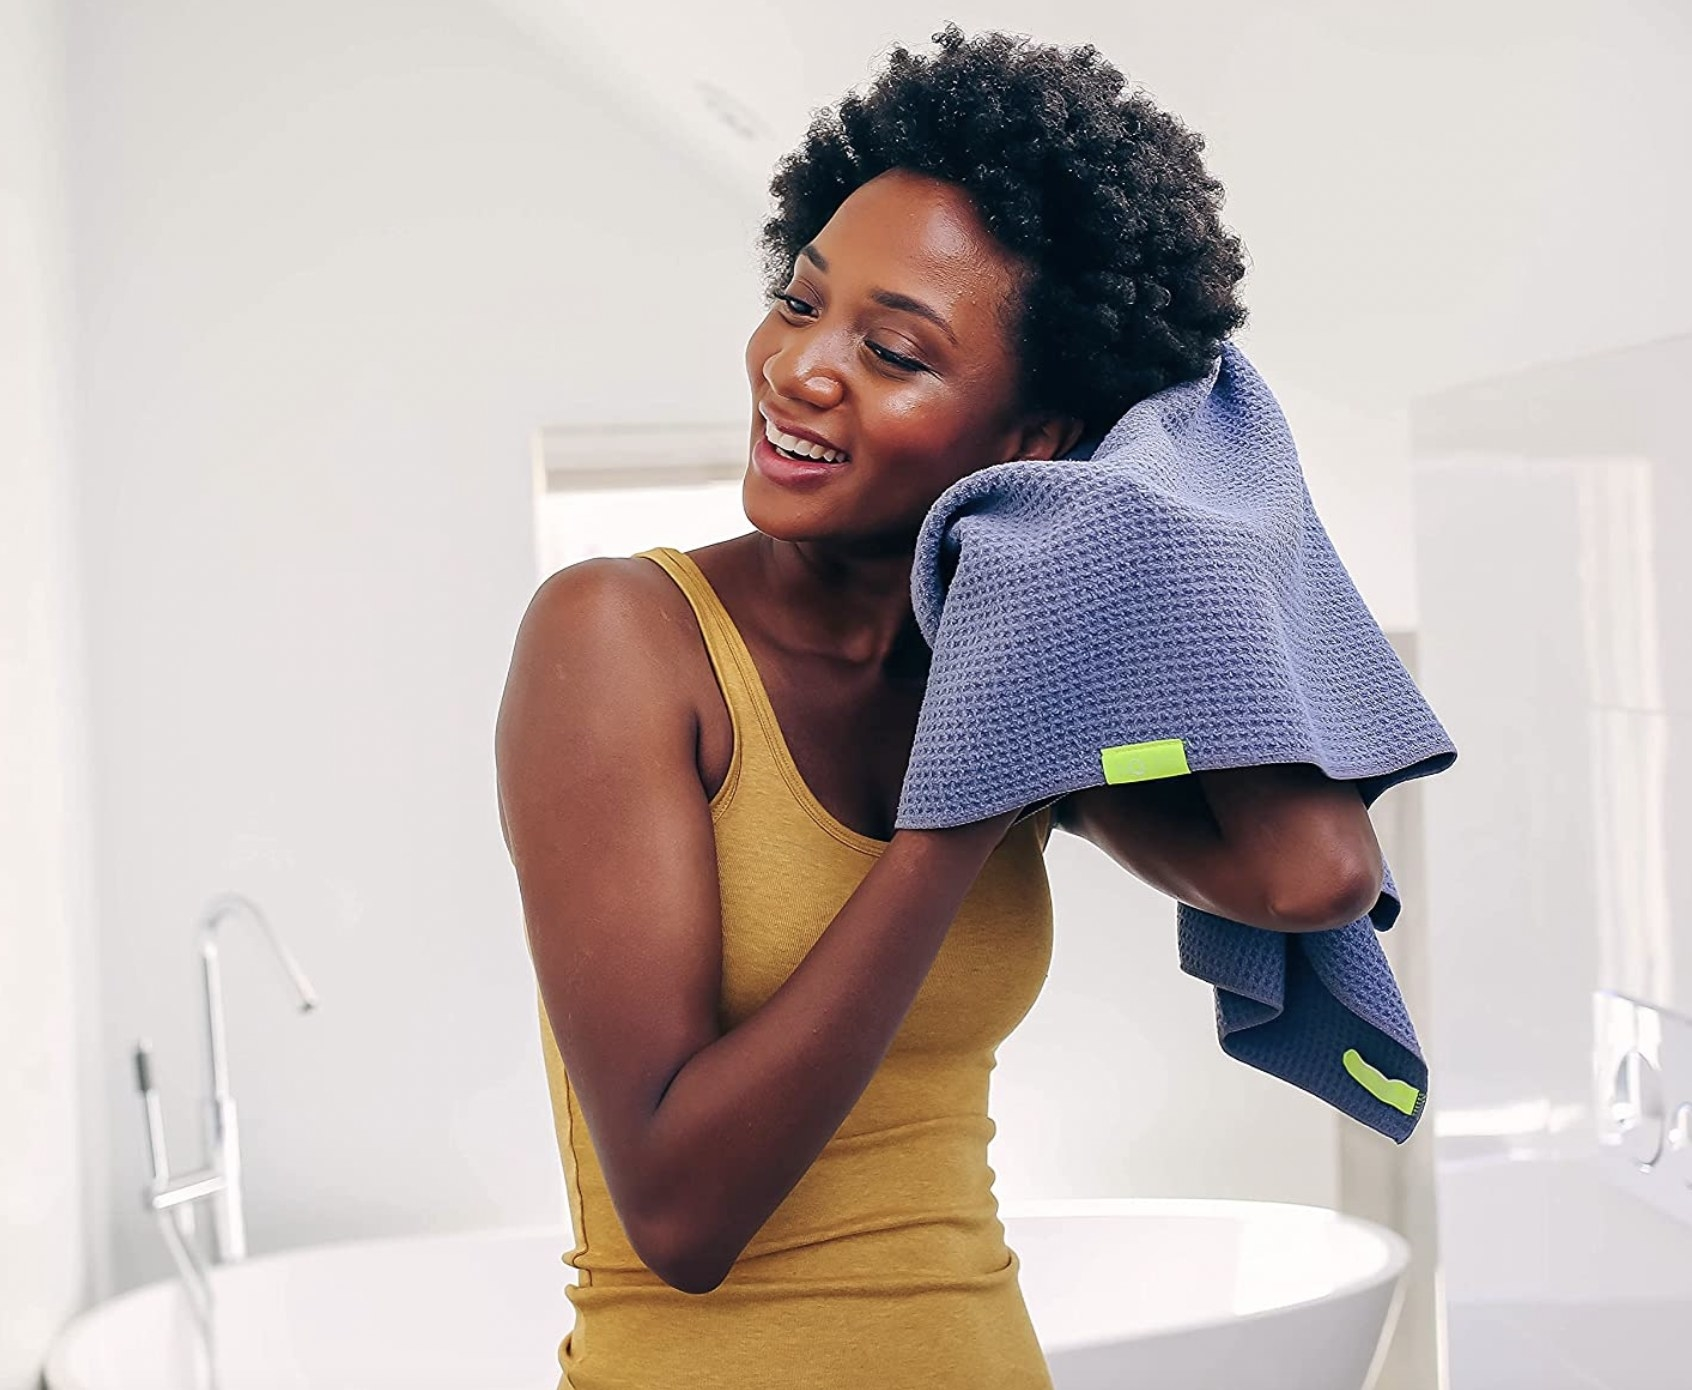 A woman drying her hair with a towel